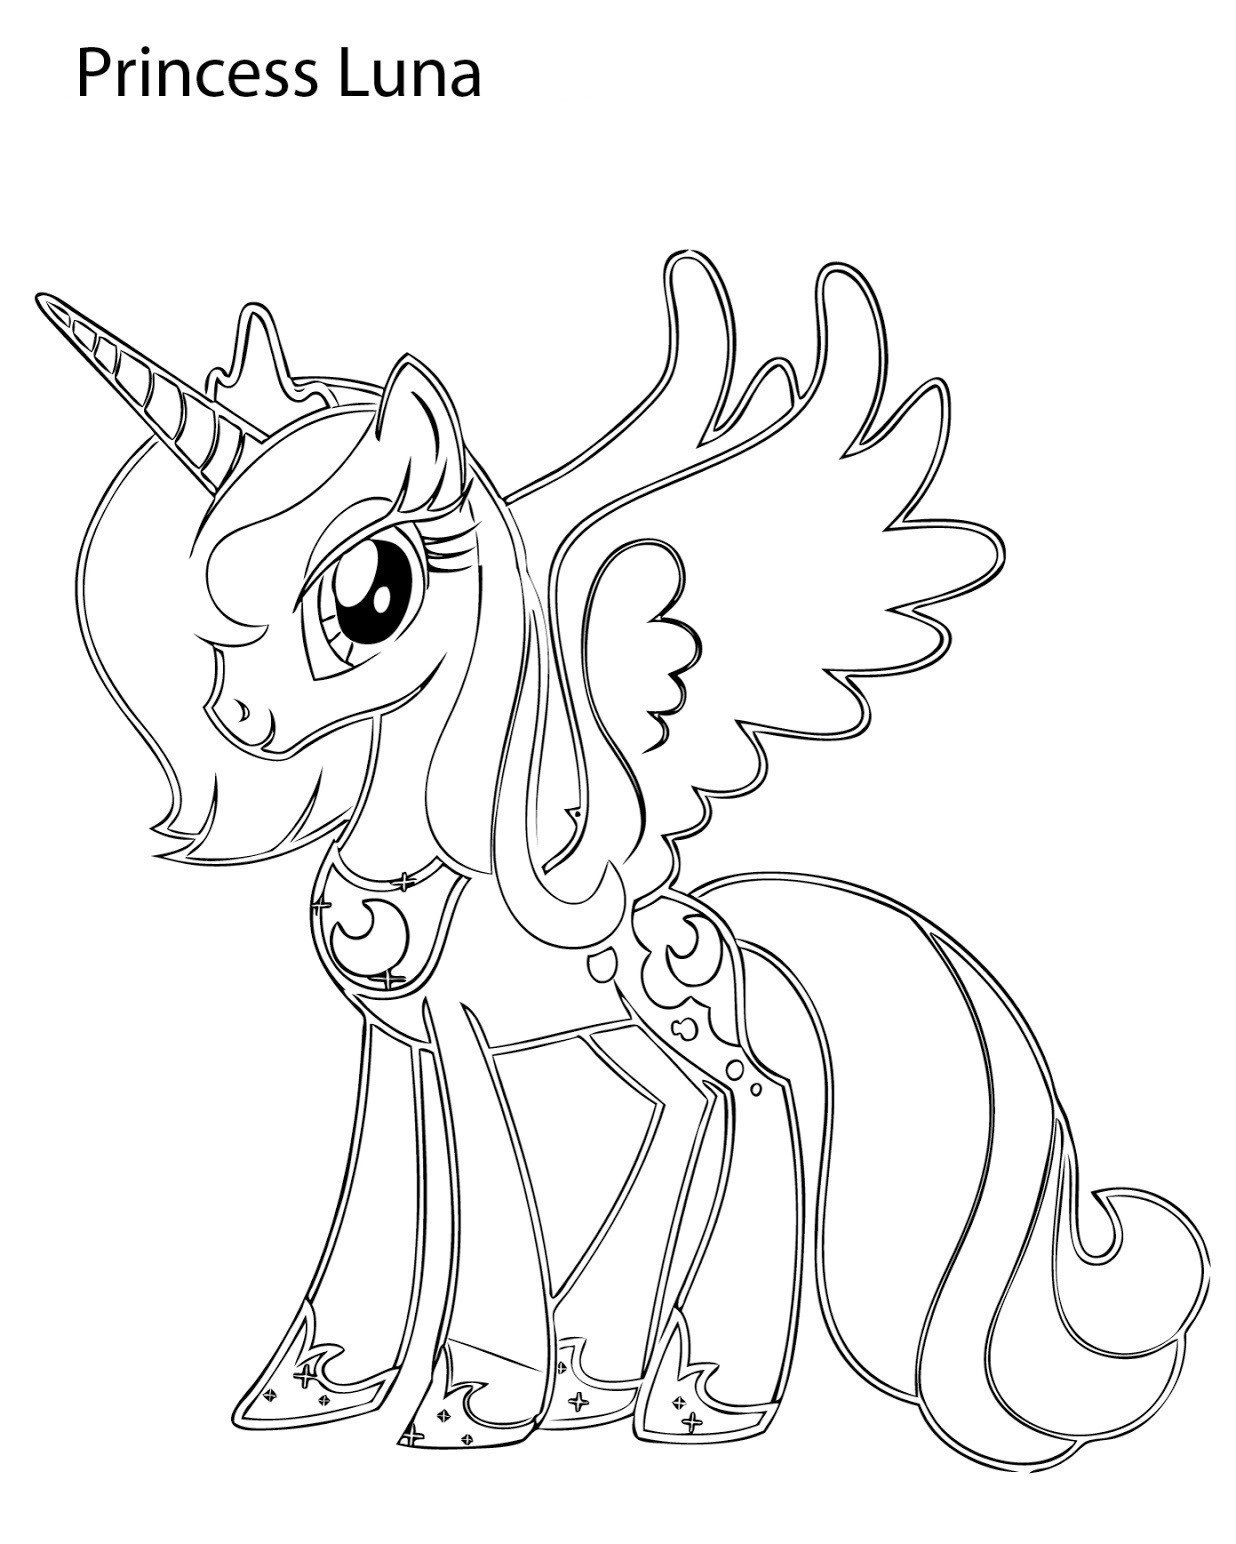 Princess Luna Coloring Pages Best Coloring Pages For Kids